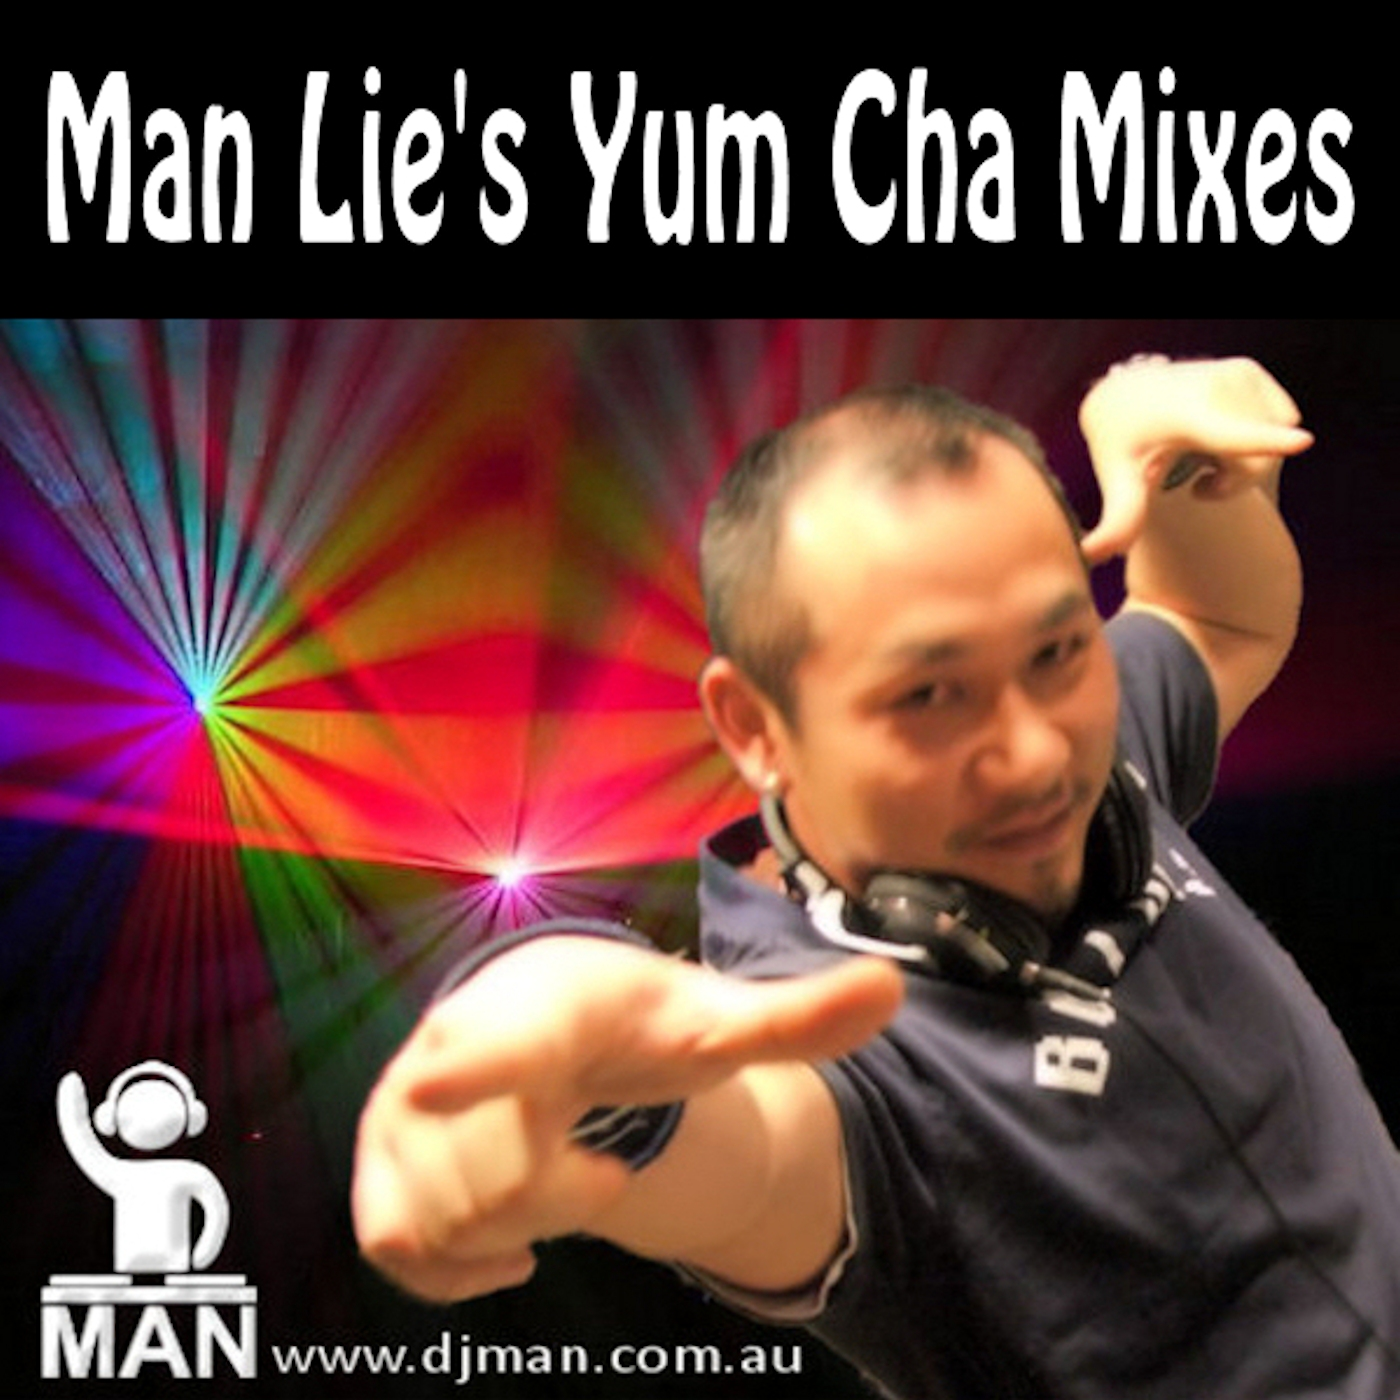 DJ Man Lie's Yum Cha Mixes